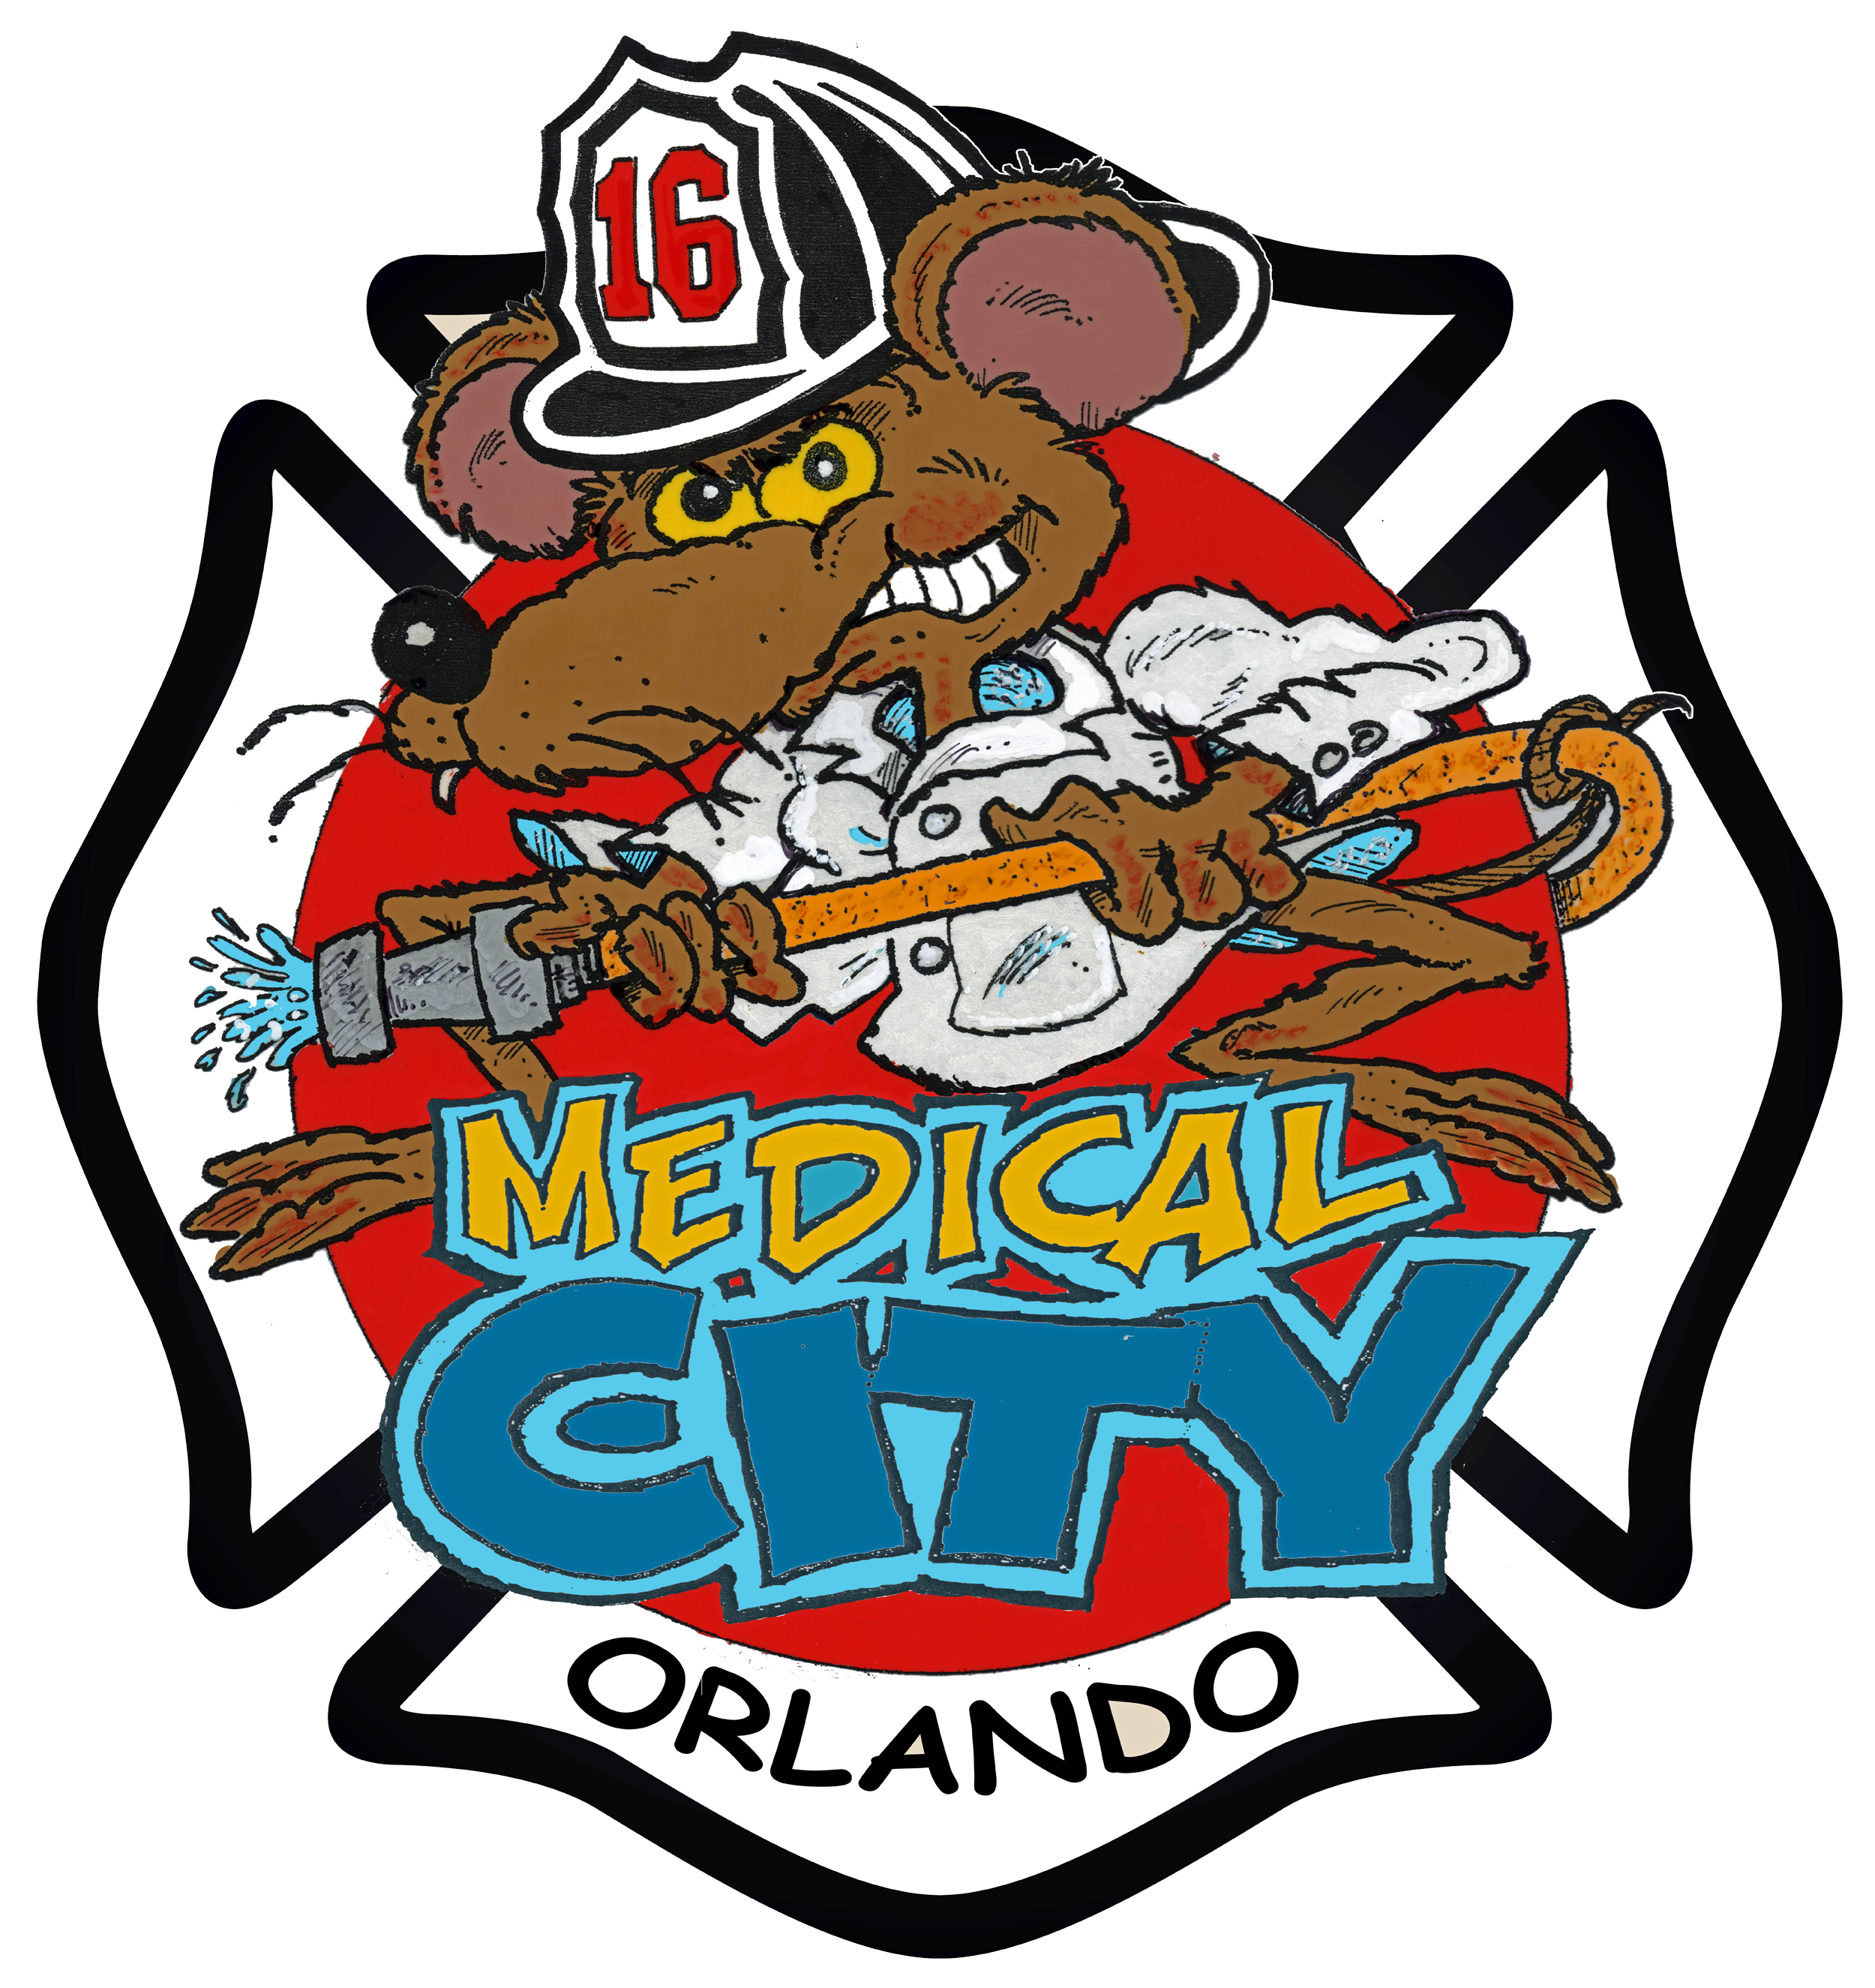 Orlando fire department station. Firefighter clipart water rescue